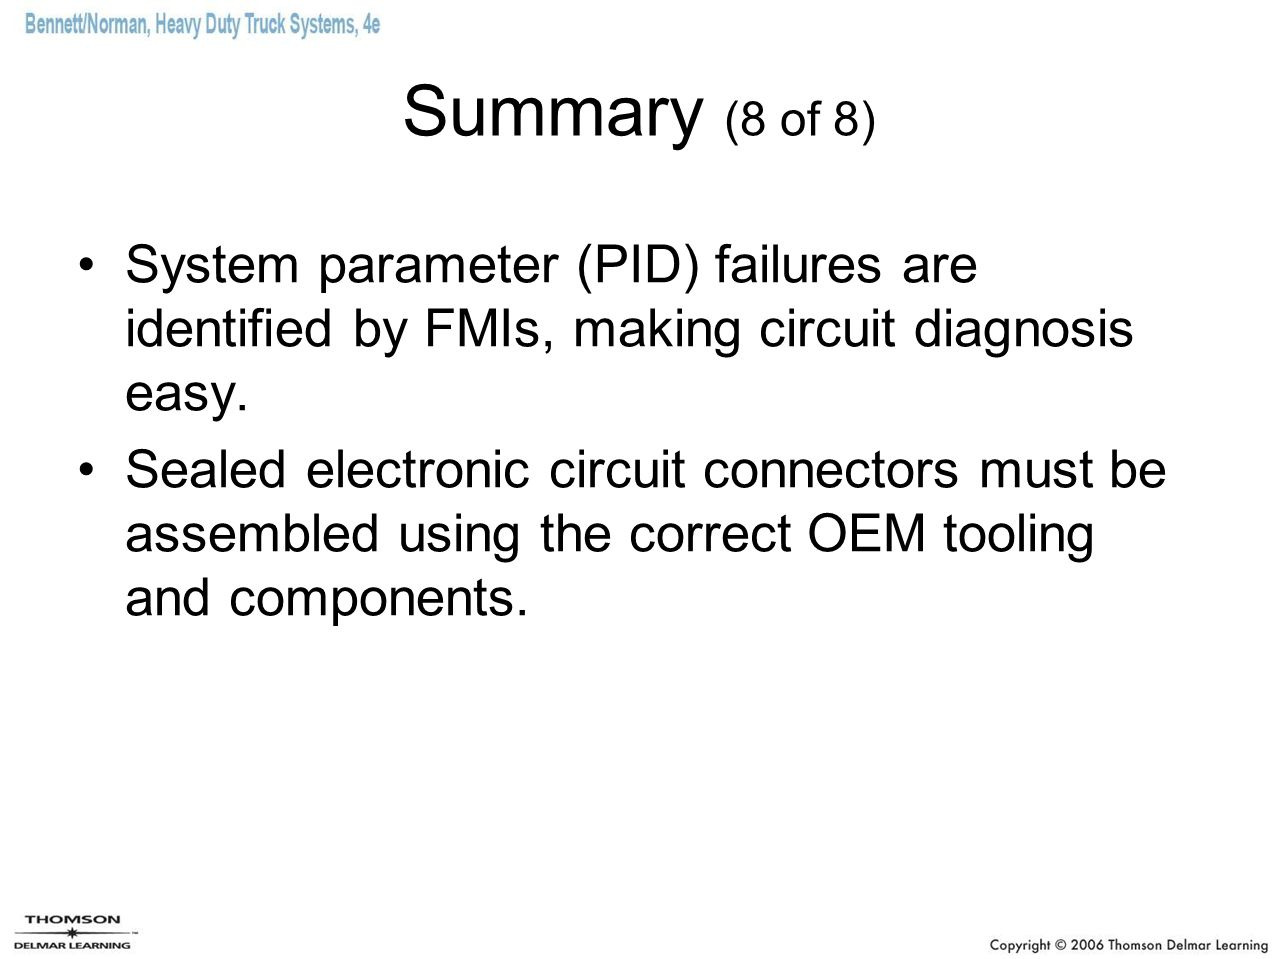 Summary (8 of 8) System parameter (PID) failures are identified by FMIs, making circuit diagnosis easy.